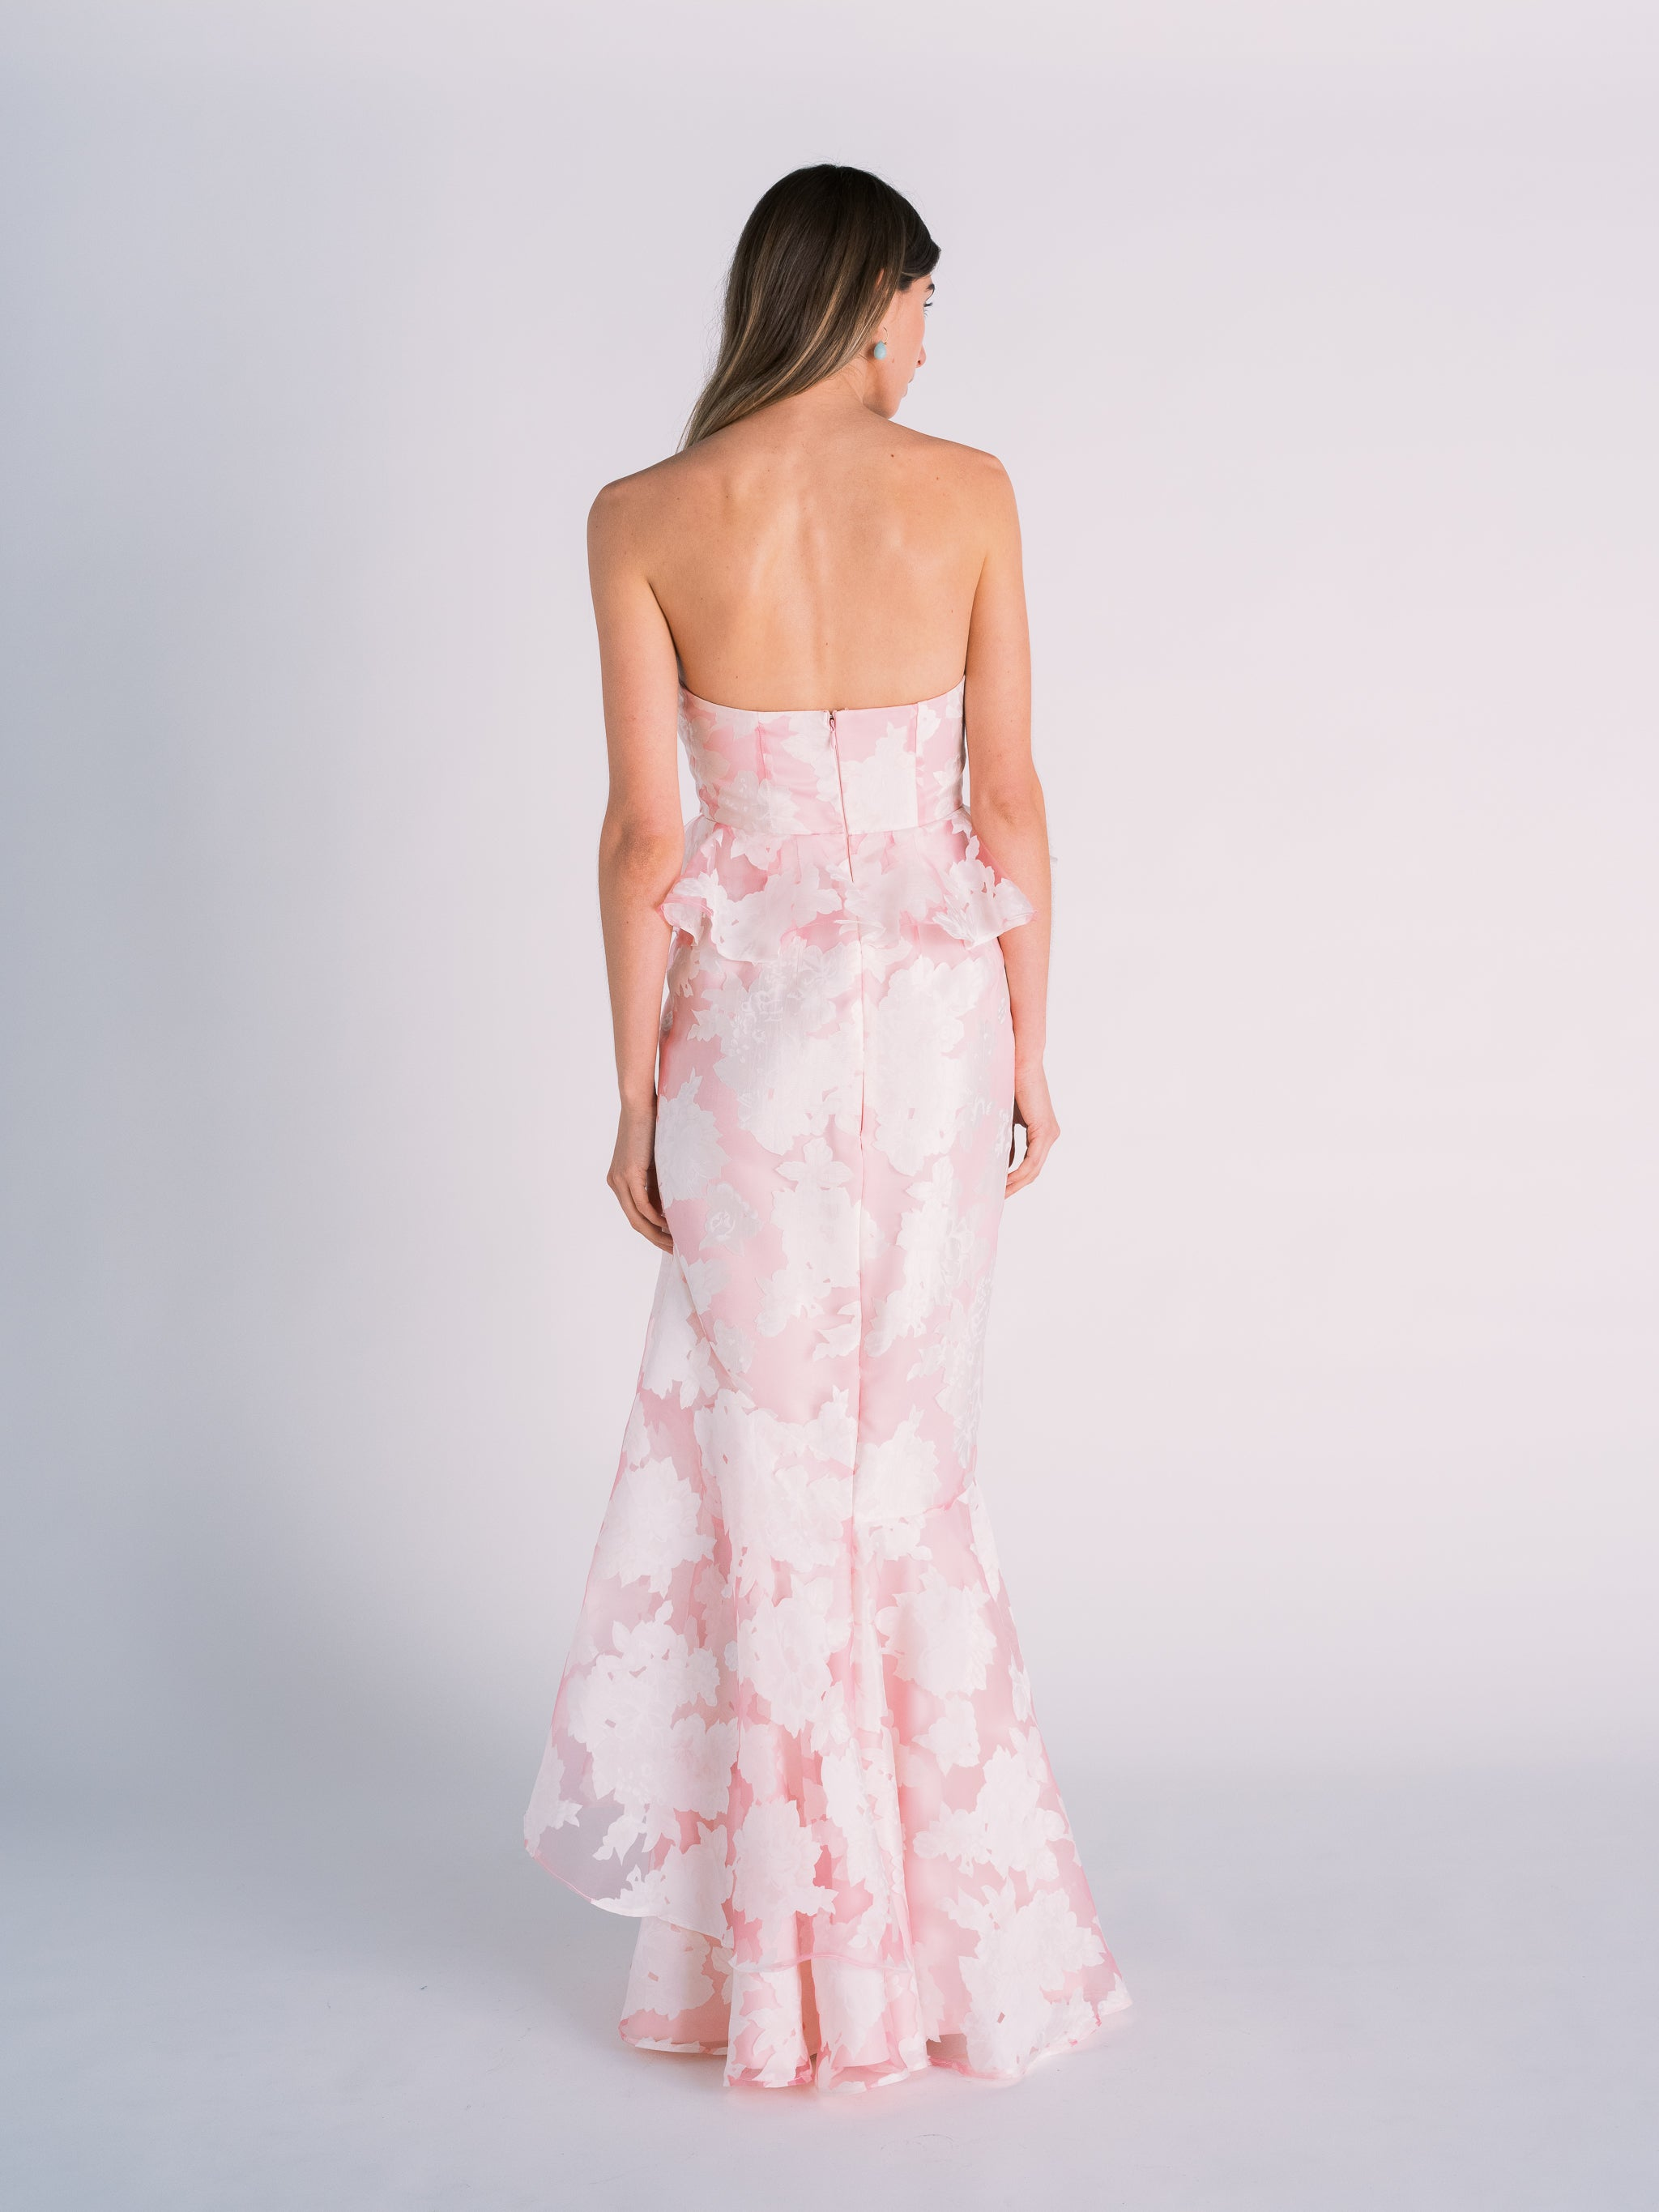 Pink Floral Strapless Gown